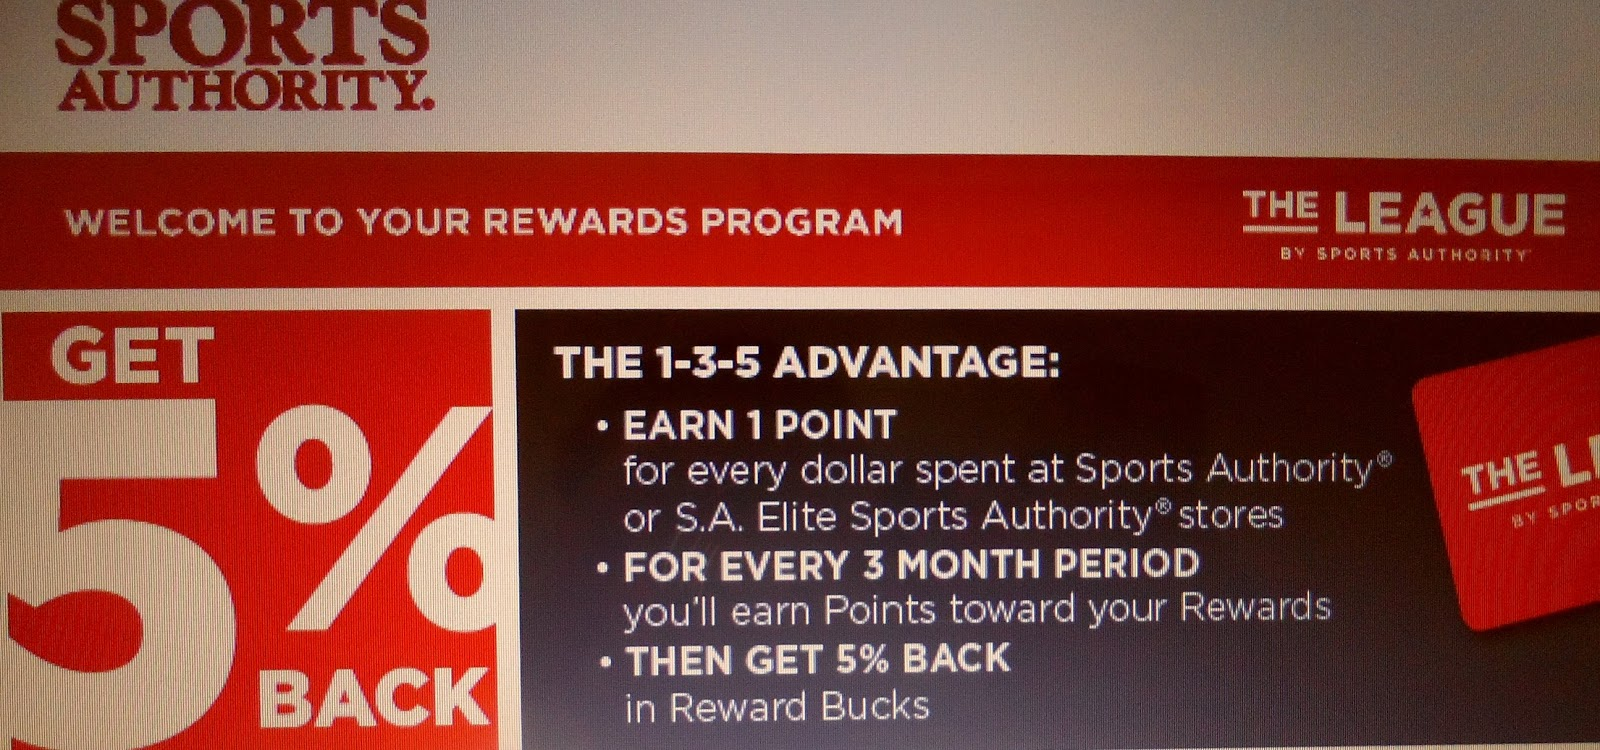 Sports Authority Coupon 2013 In Store Of sports authority's